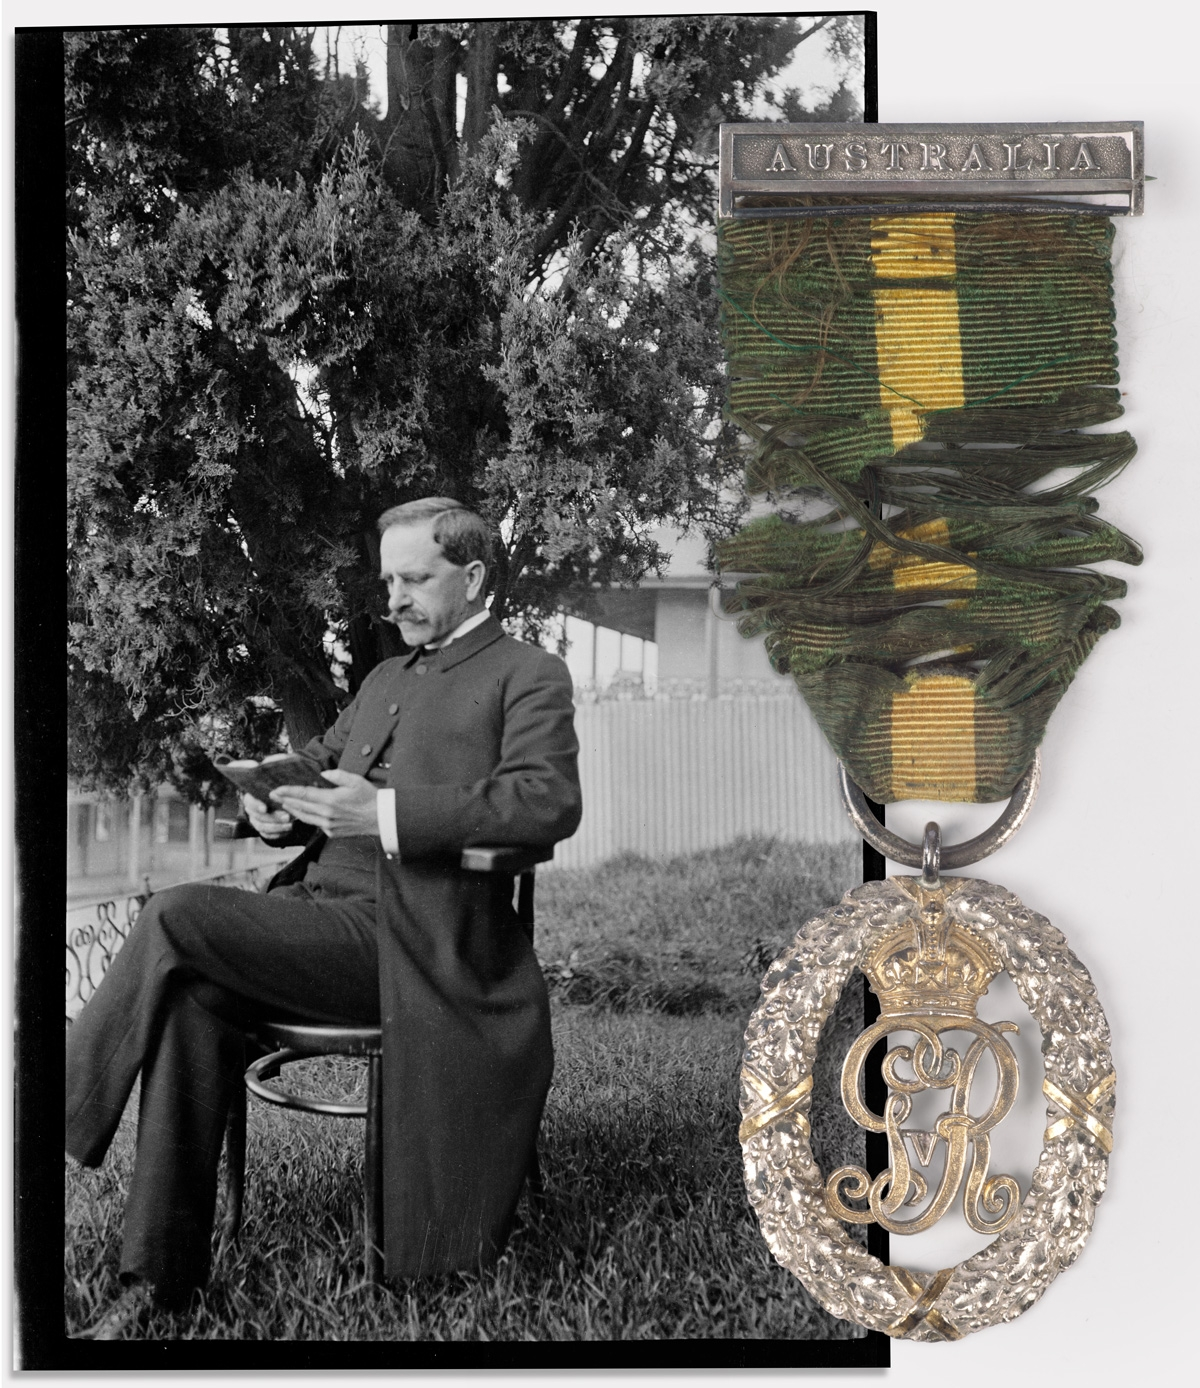 Photo of man in uniform with medal overlaid.